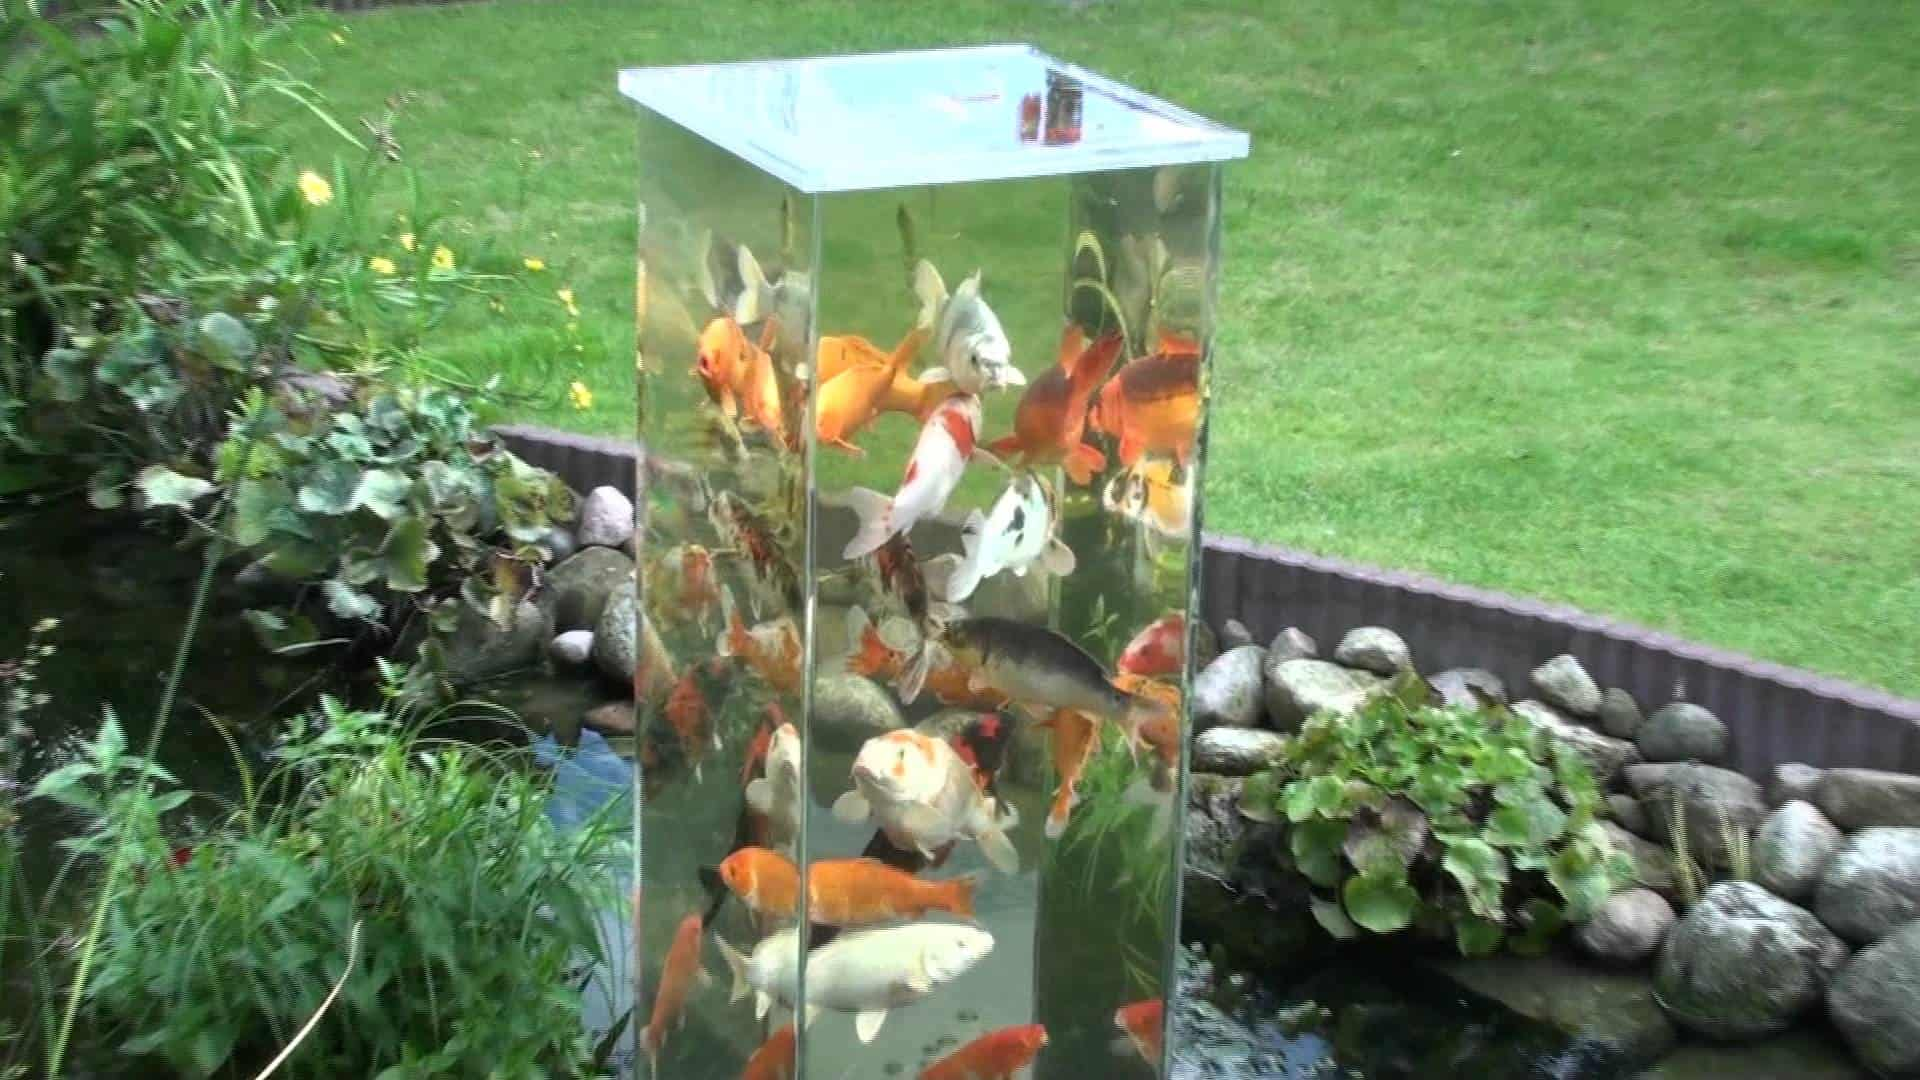 35 Sublime Koi Pond Designs and Water Garden Ideas for ... on Koi Ponds Ideas id=14904